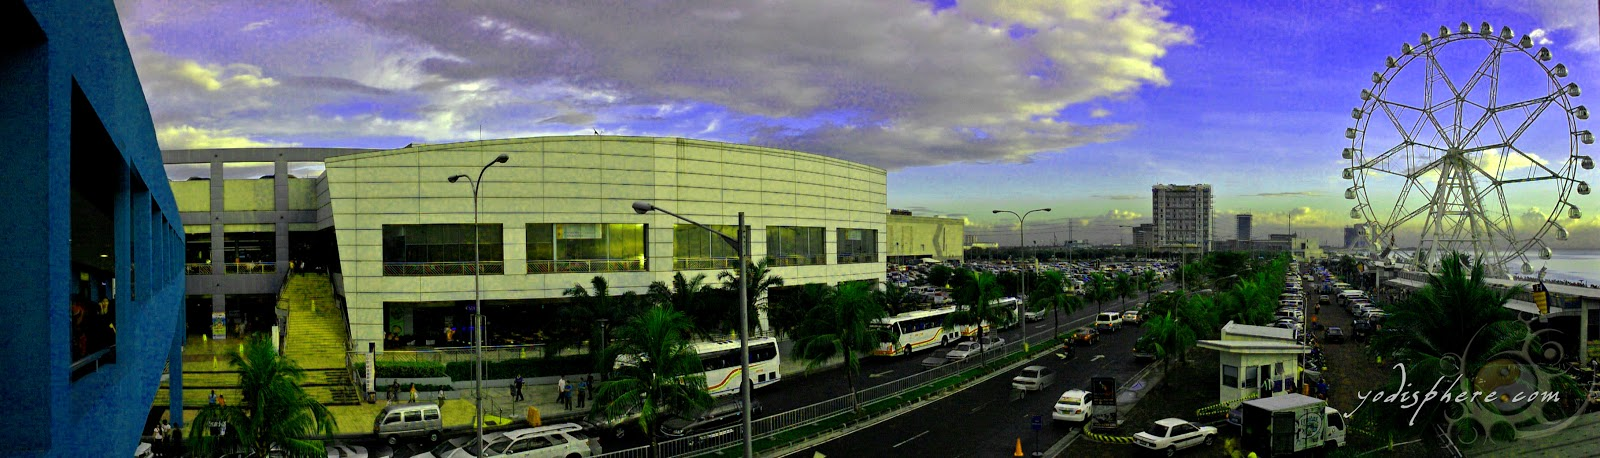 Panoramic view of SM Mall of Asia and its giant ferries wheel